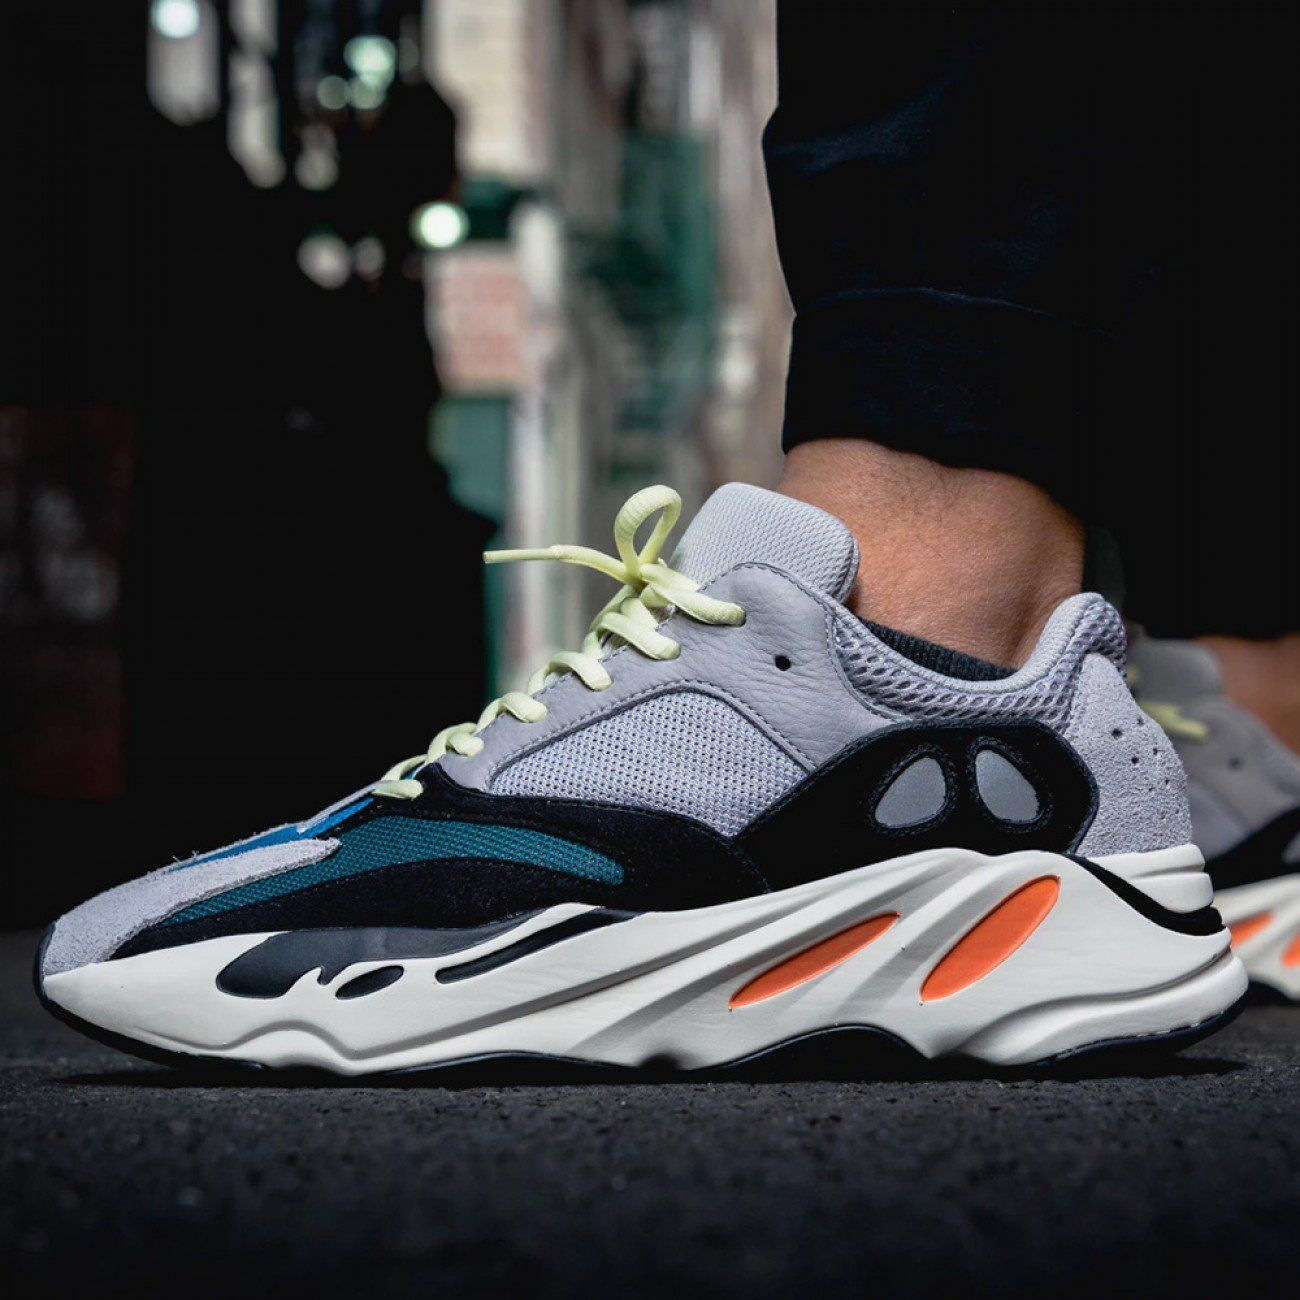 huge selection of great deals wholesale dealer Adidas Yeezy Boost Wave Runner 700 'OG' in 2020 | Sneakers ...